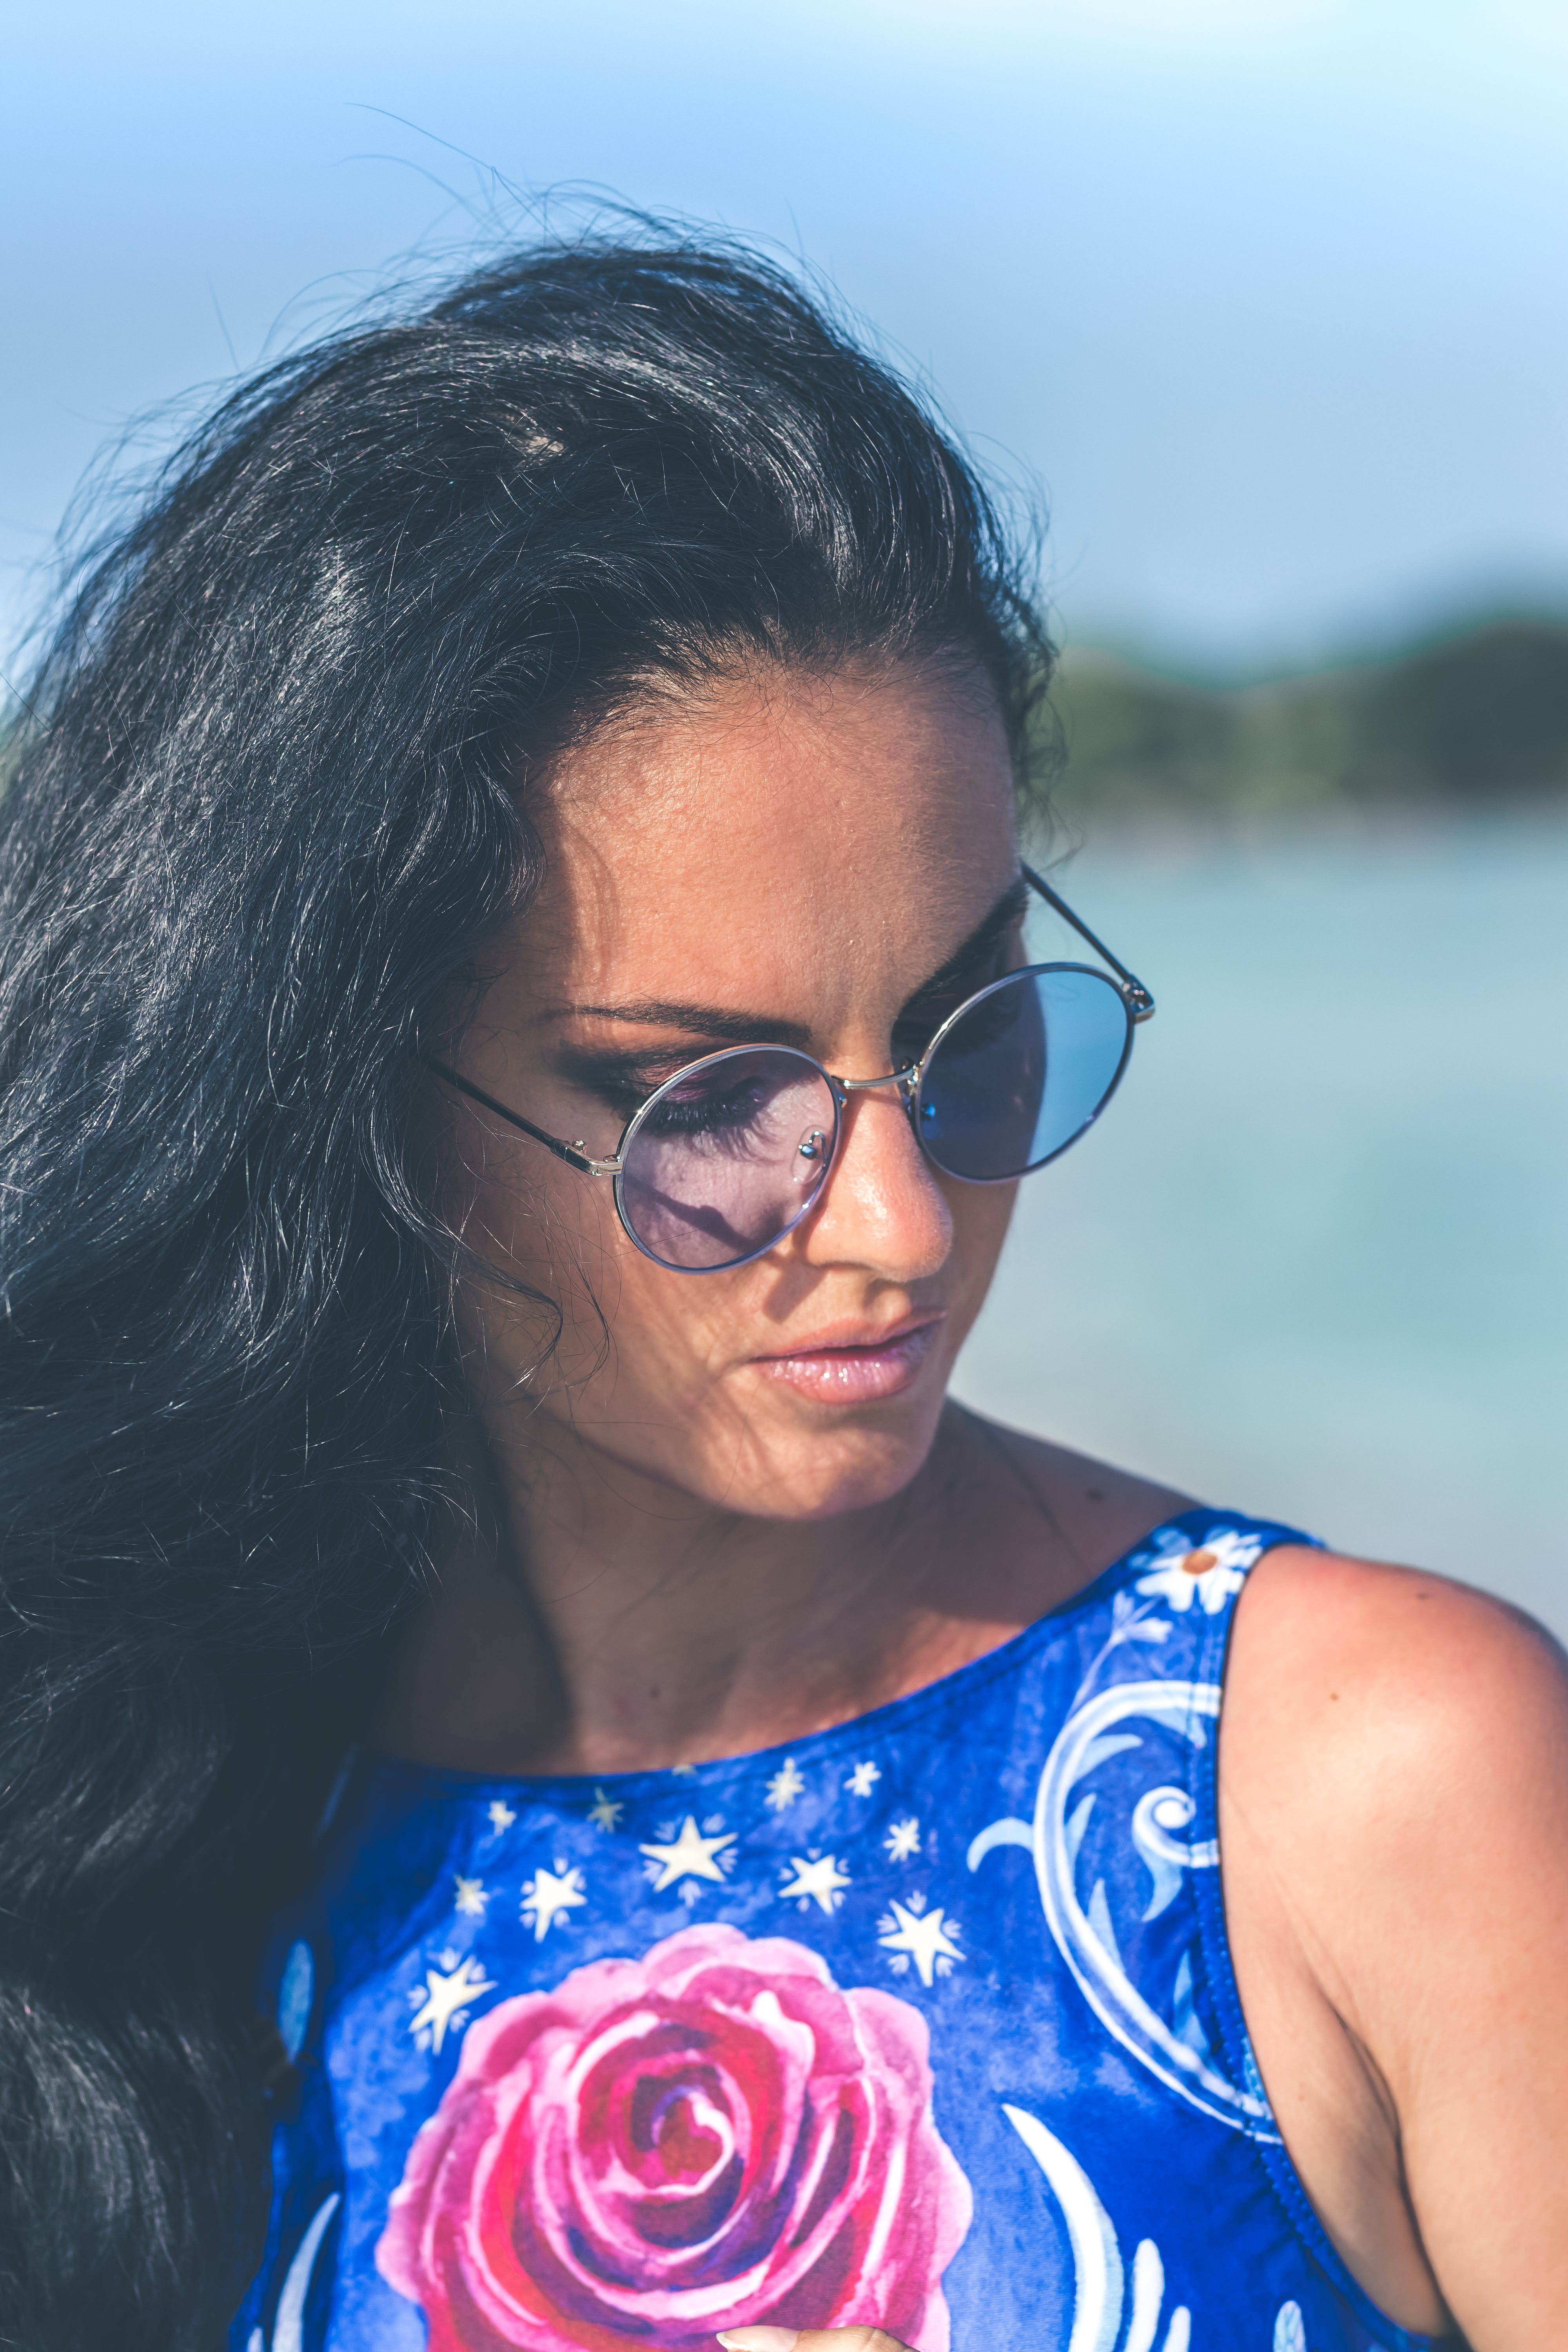 Shallow Focus Photography of Woman Wearing Blue Floral Sleeveless Top and Black Sunglasses With Gray Frames